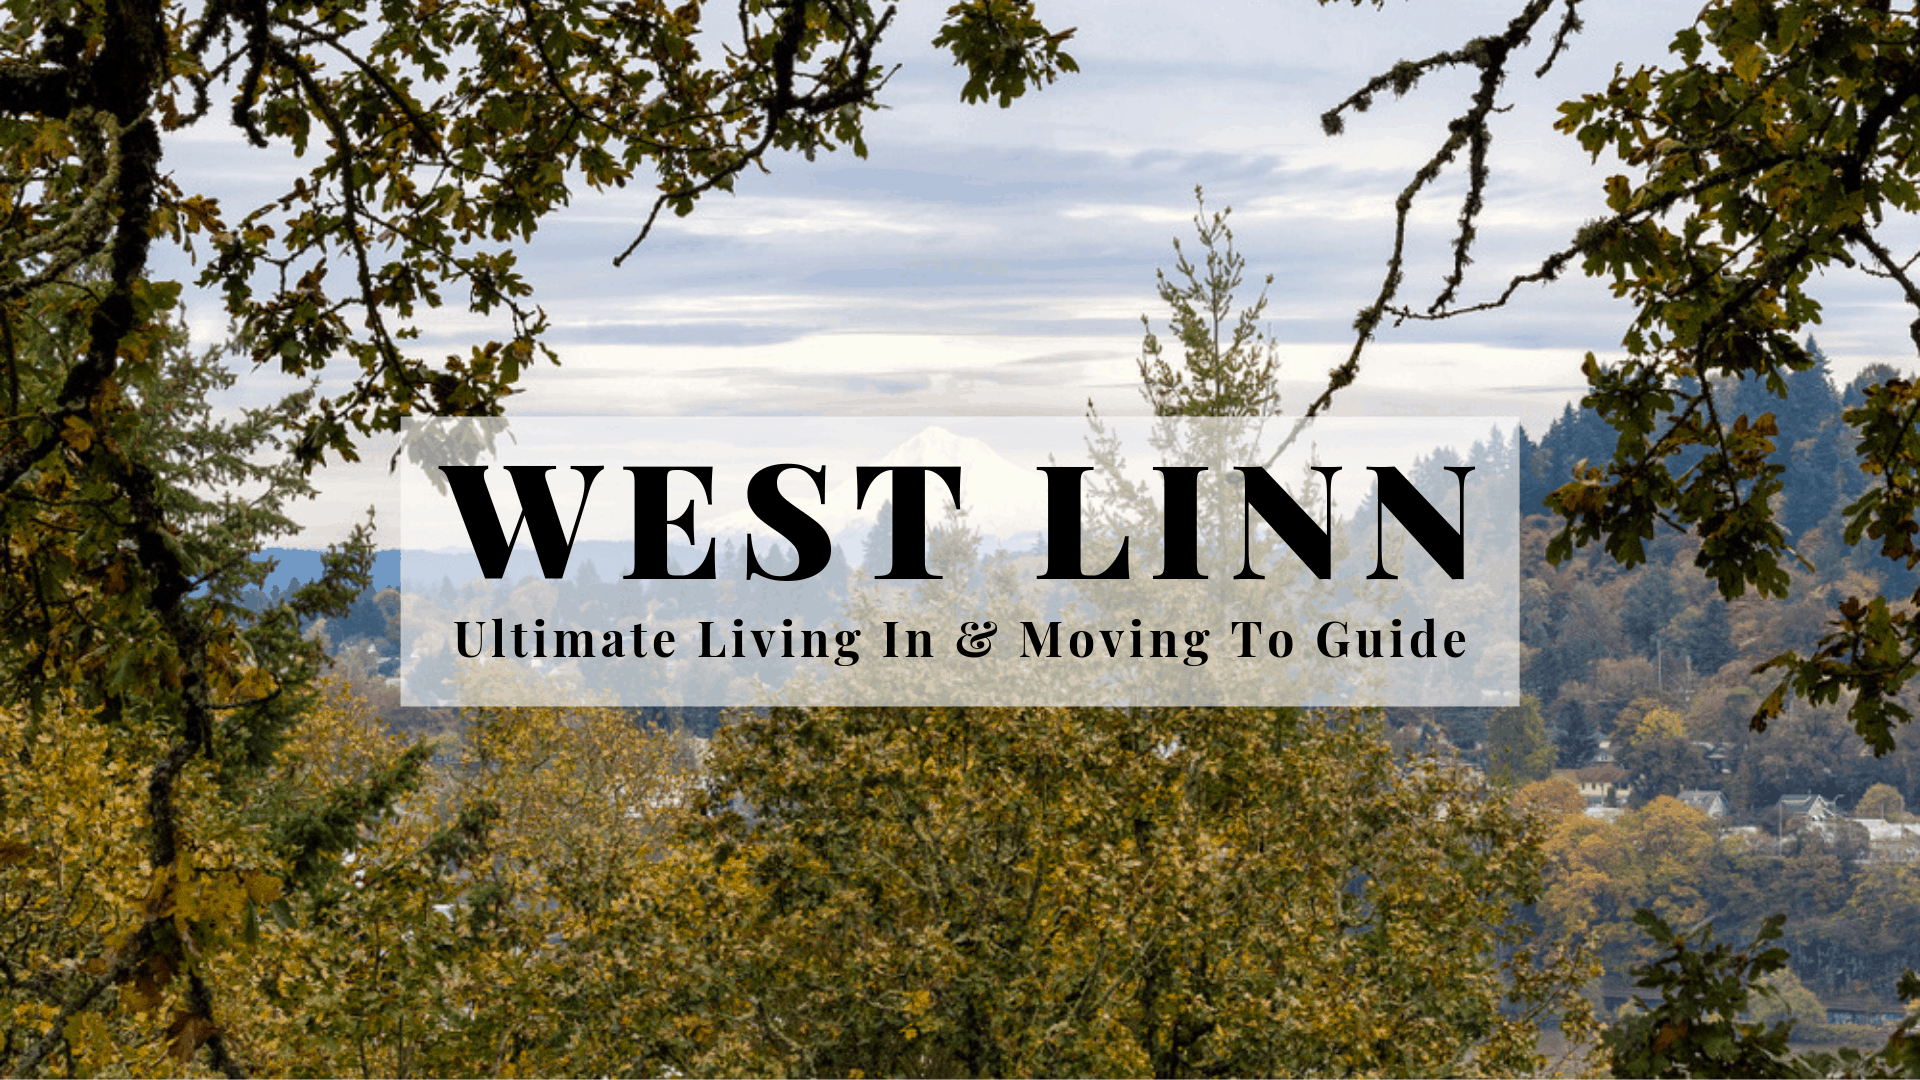 West Linn - Ultimate Living In & Moving To Guide